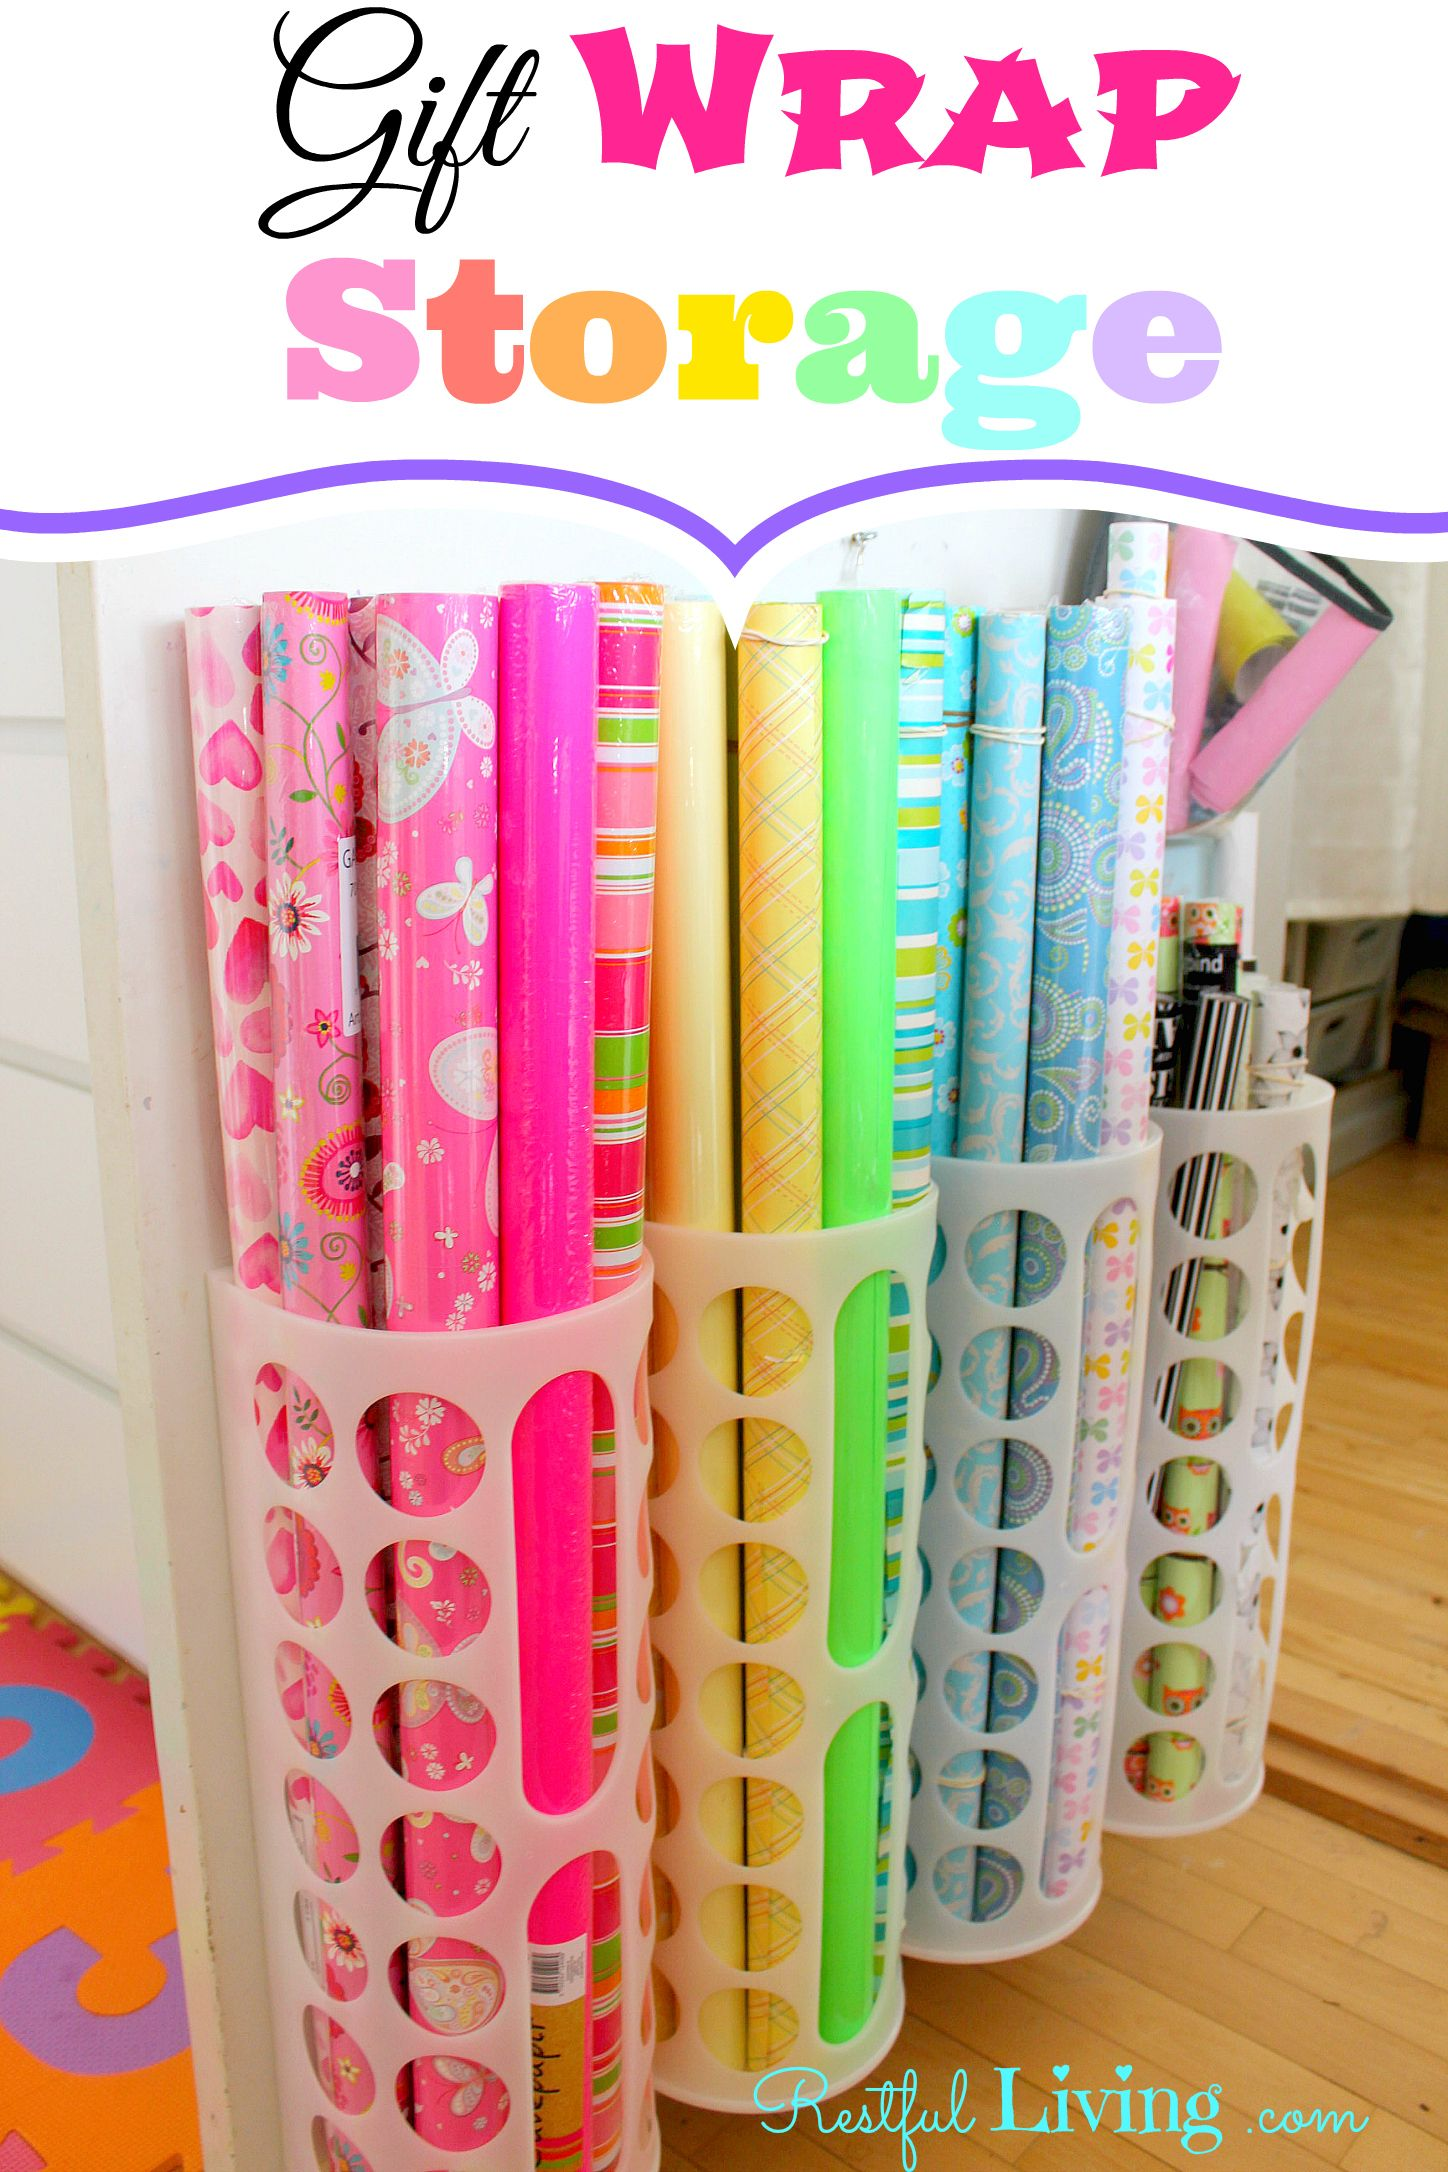 I added Gift Wrap Storage Restful Living to an inlinkz linkup